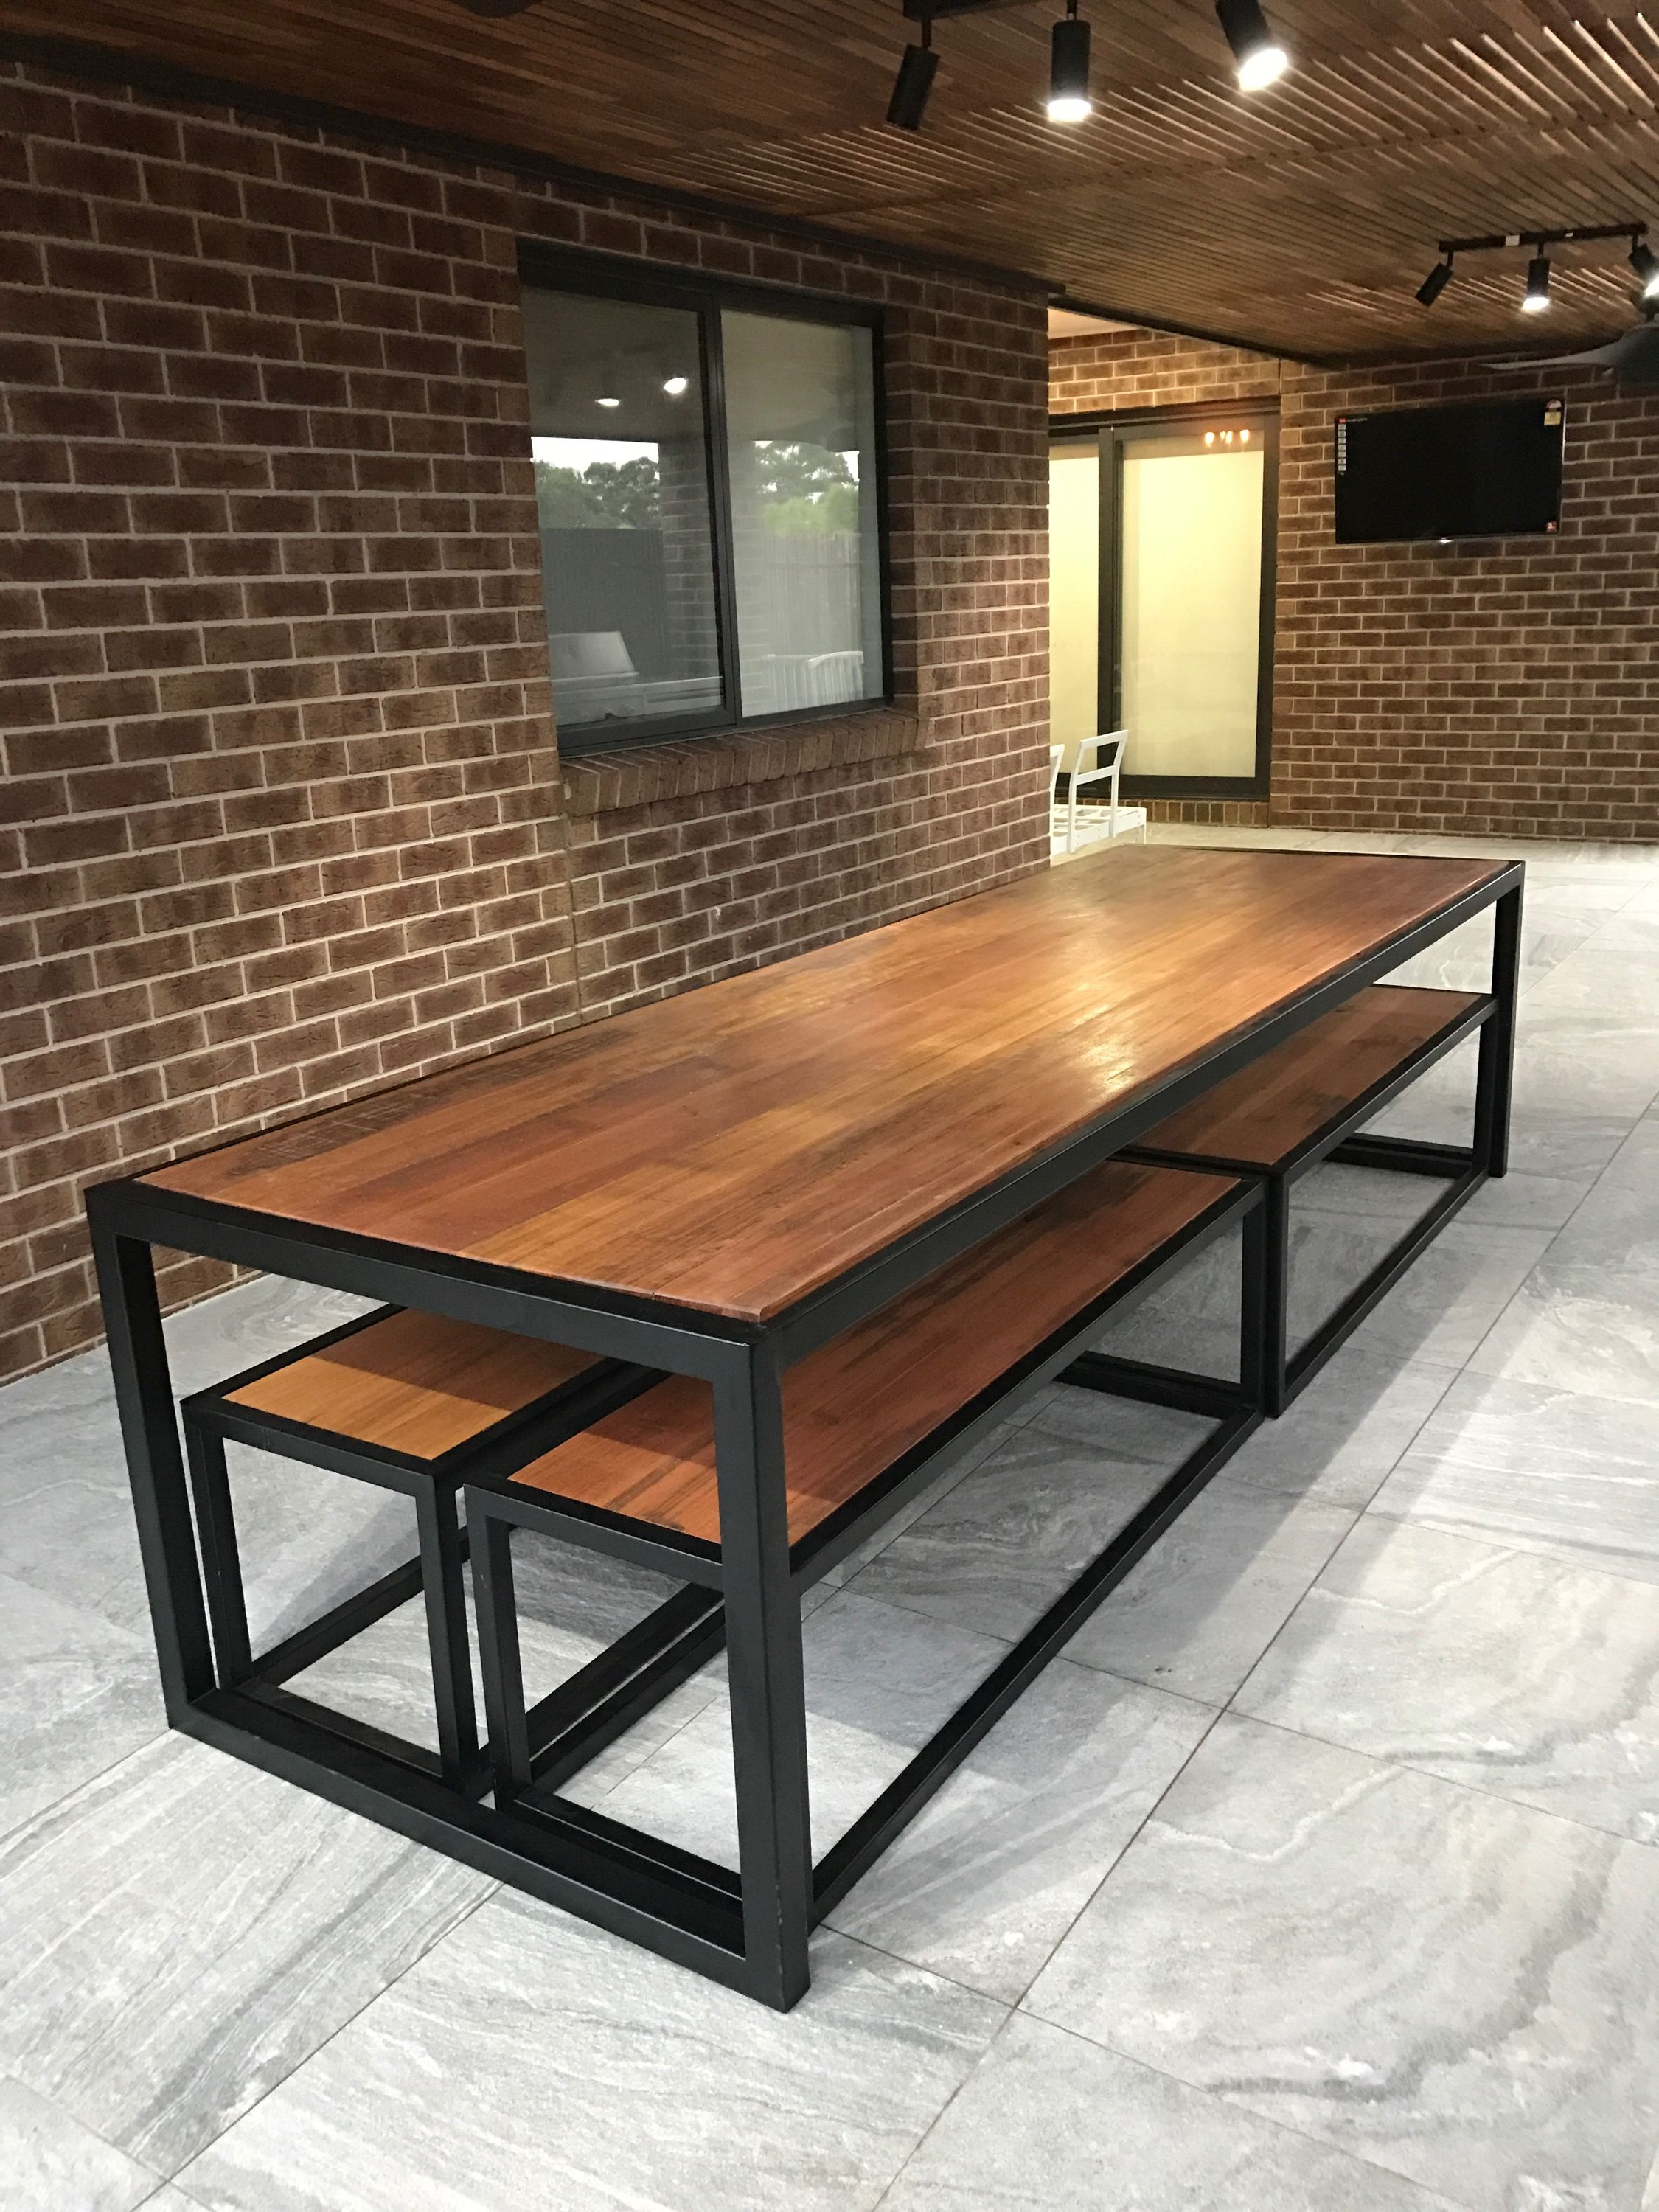 Industrial Benches For Sitting Recycled Tasmanian Oak Industrial Dining Table And Bench